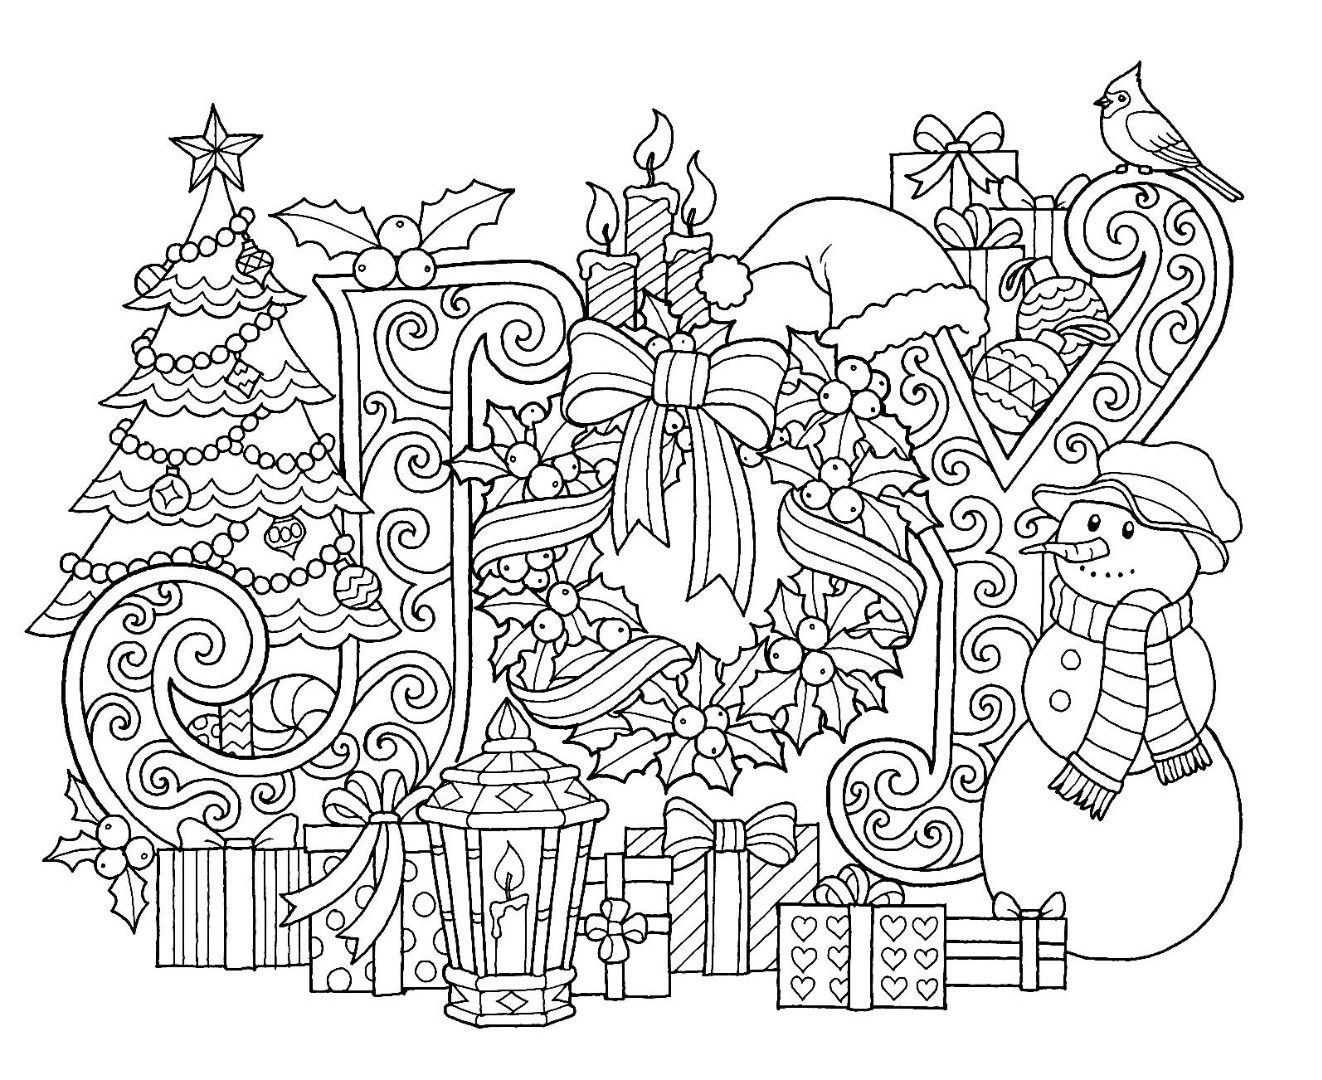 - Christmas Joy Coloring Page Christmas Coloring Sheets, Coloring